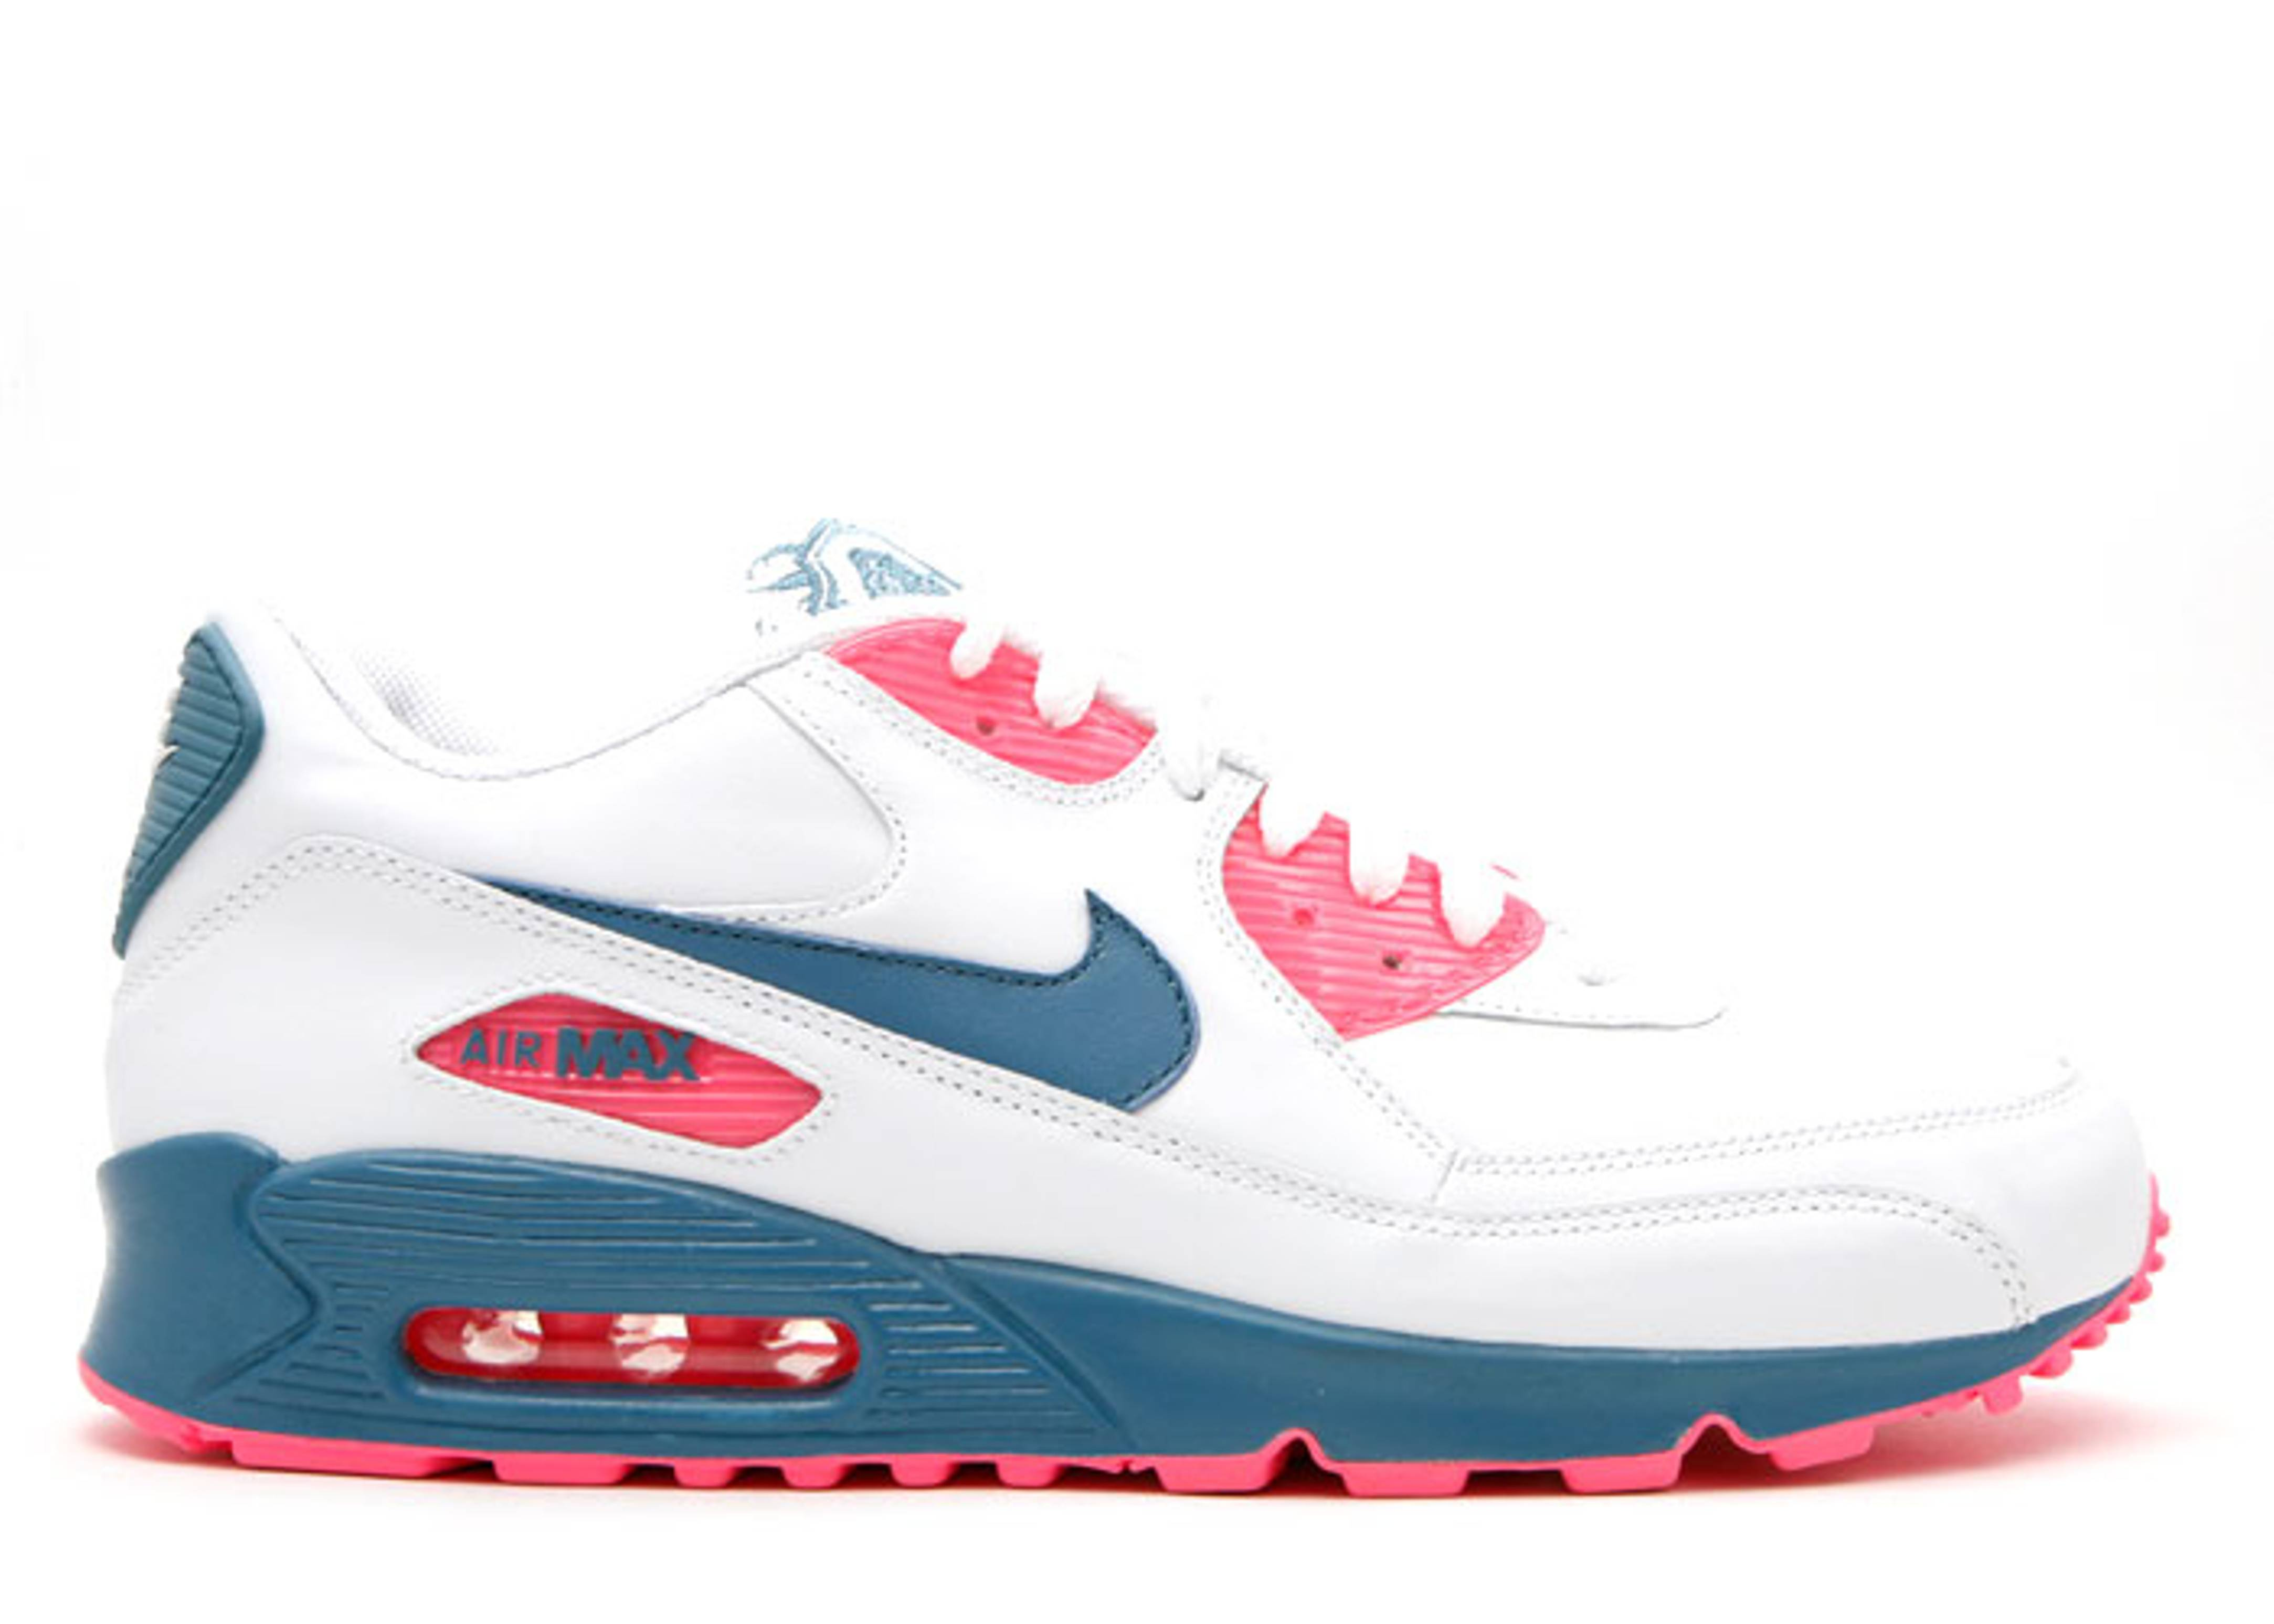 watch 86a9f f509c Wmns Air Max 90 Leather - Nike - 314455 141 - white/rift ...